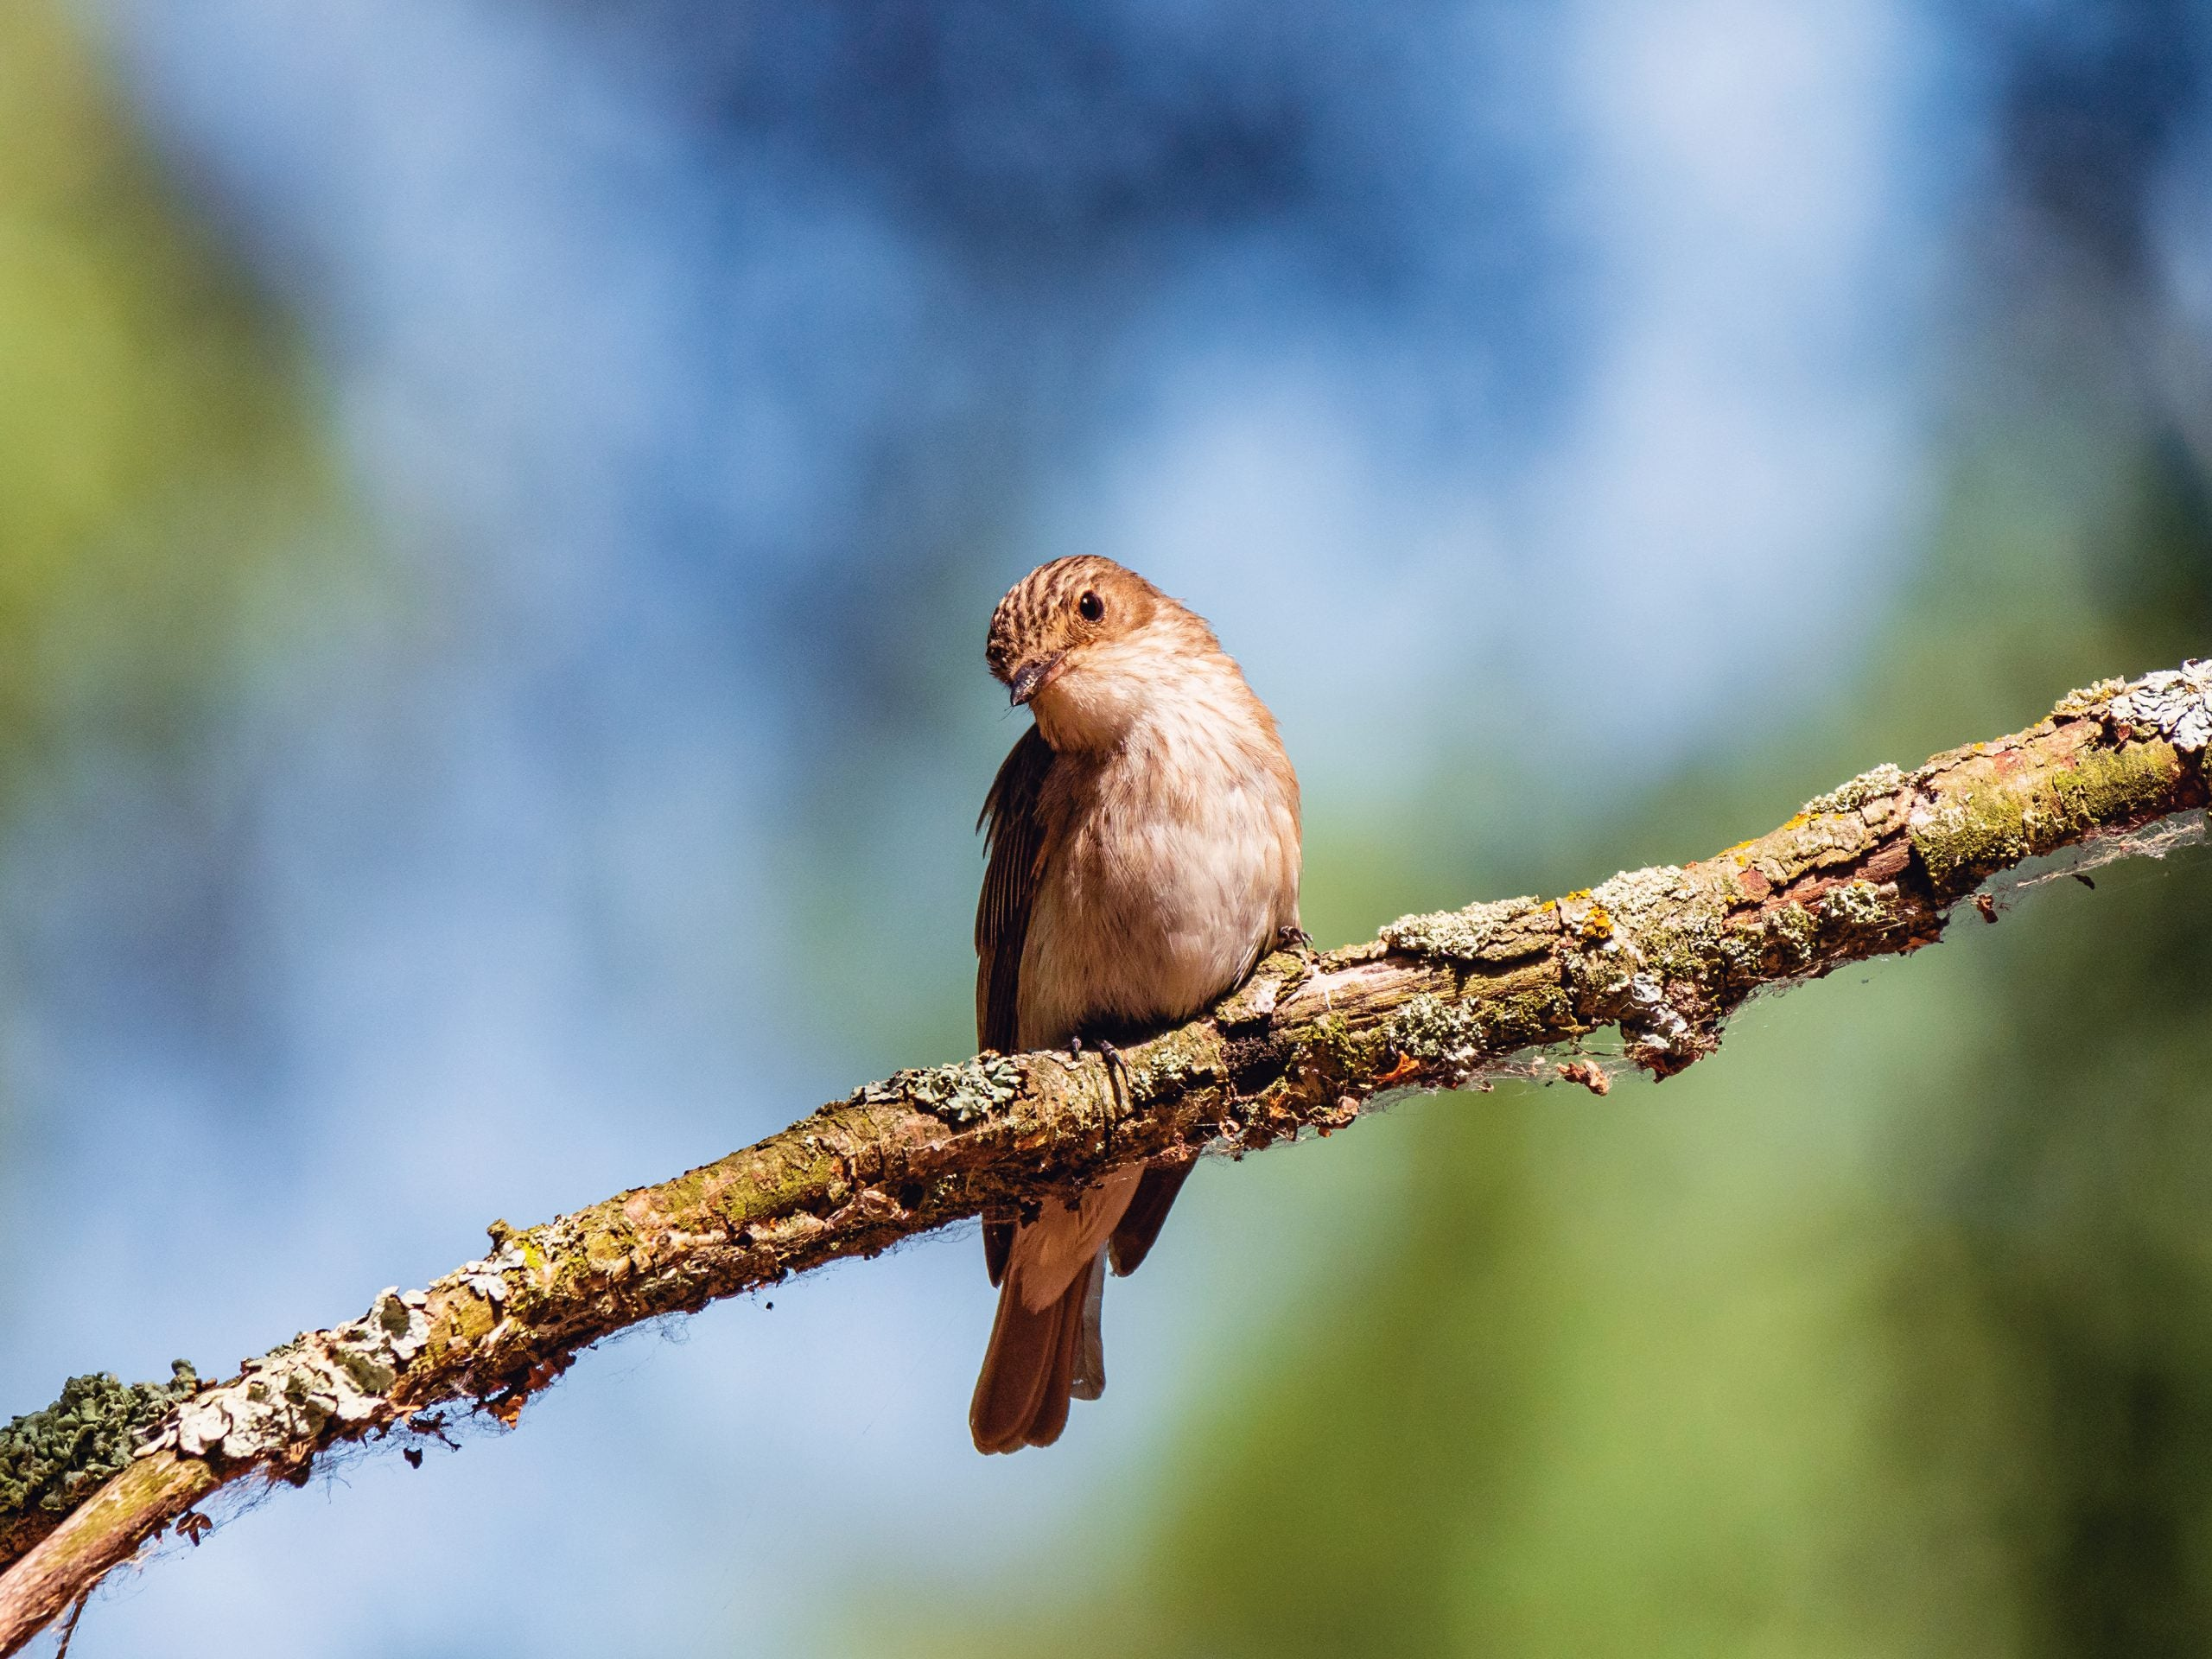 Summer reflection: Call of the flycatcher